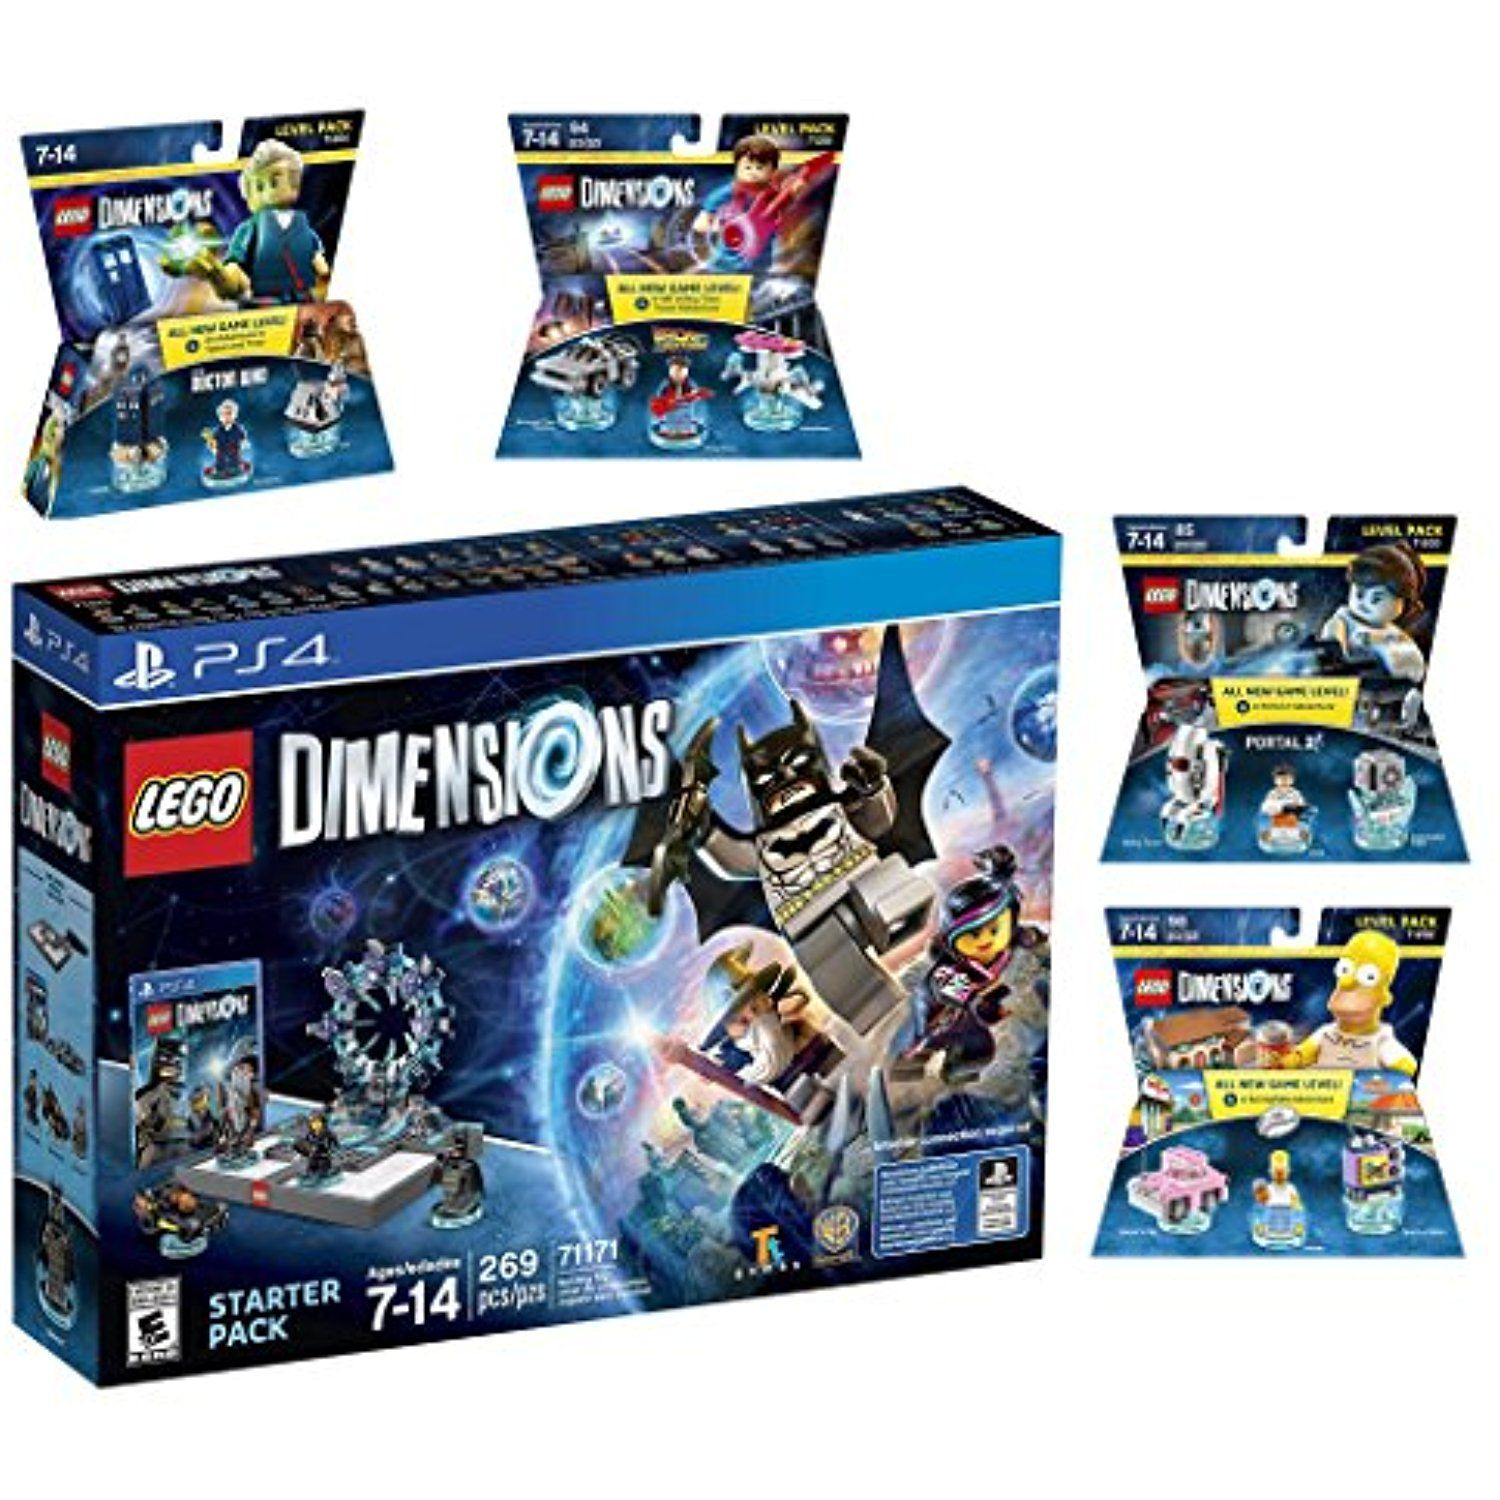 Lego Dimensions Starter Pack The Simpsons Homer Simpson Portal 2 Doctor Who Back To The Future Level Packs Playstat Lego Dimensions Xbox One S Xbox One